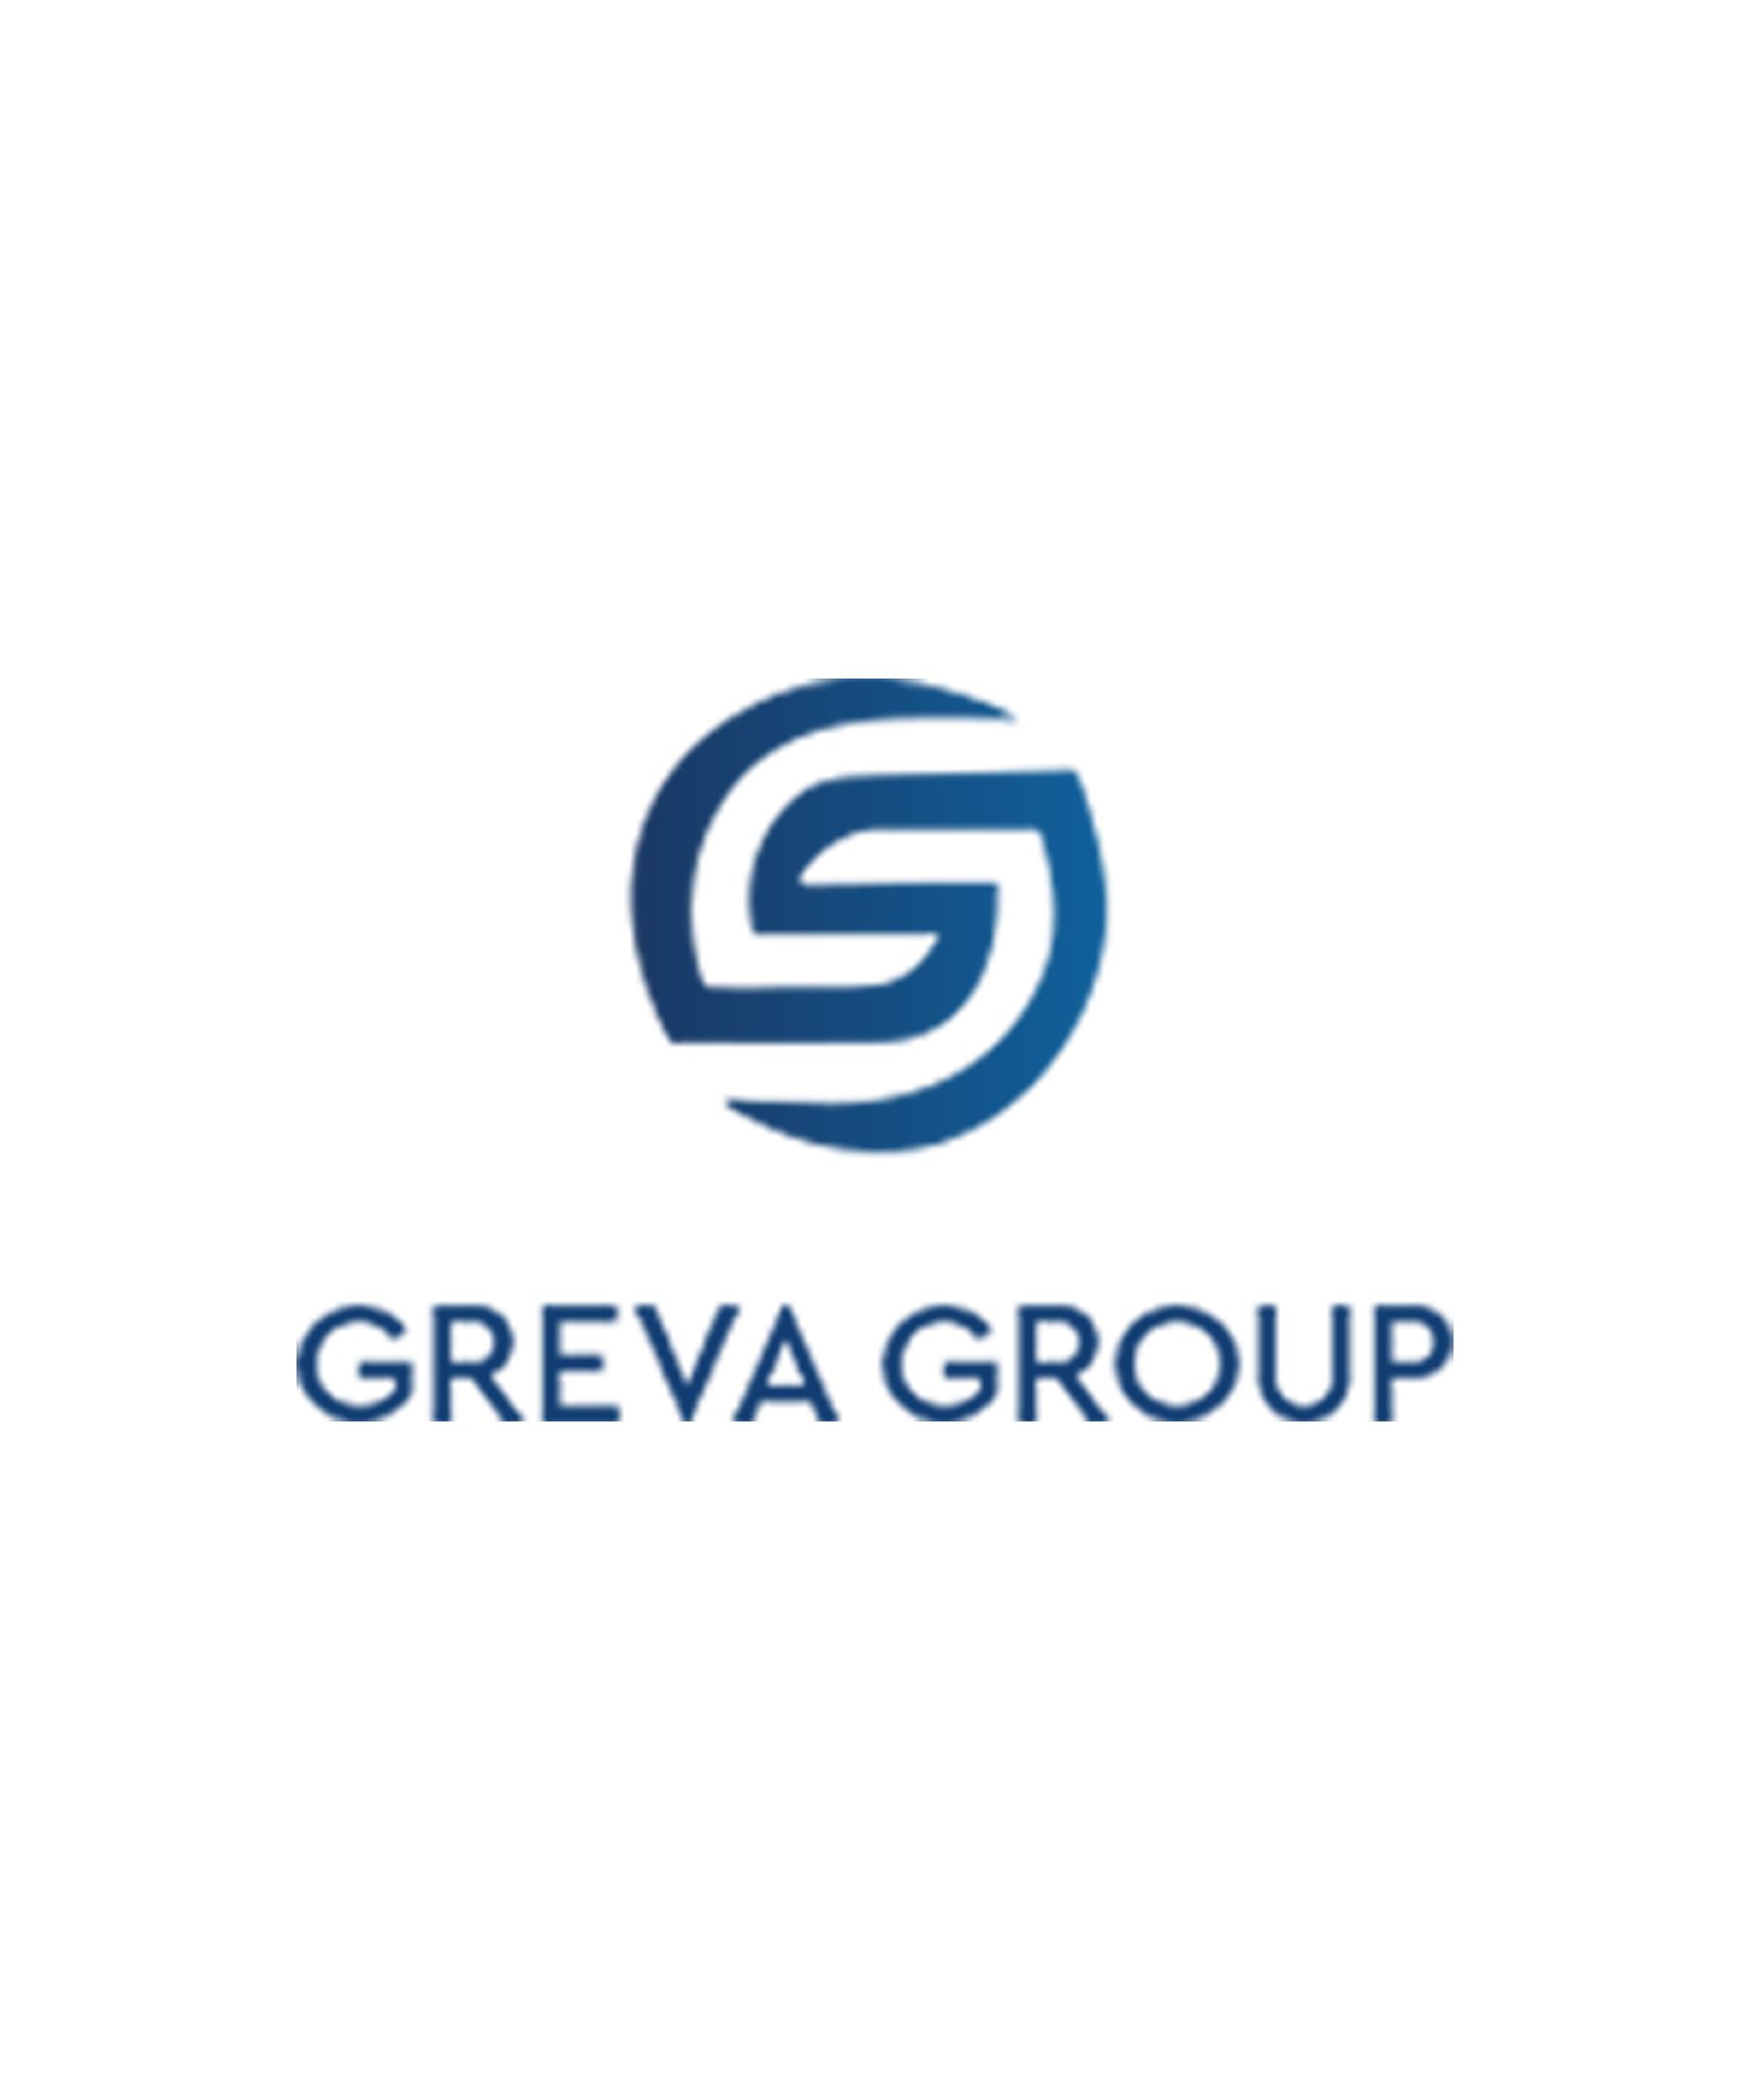 Greva Group - text here